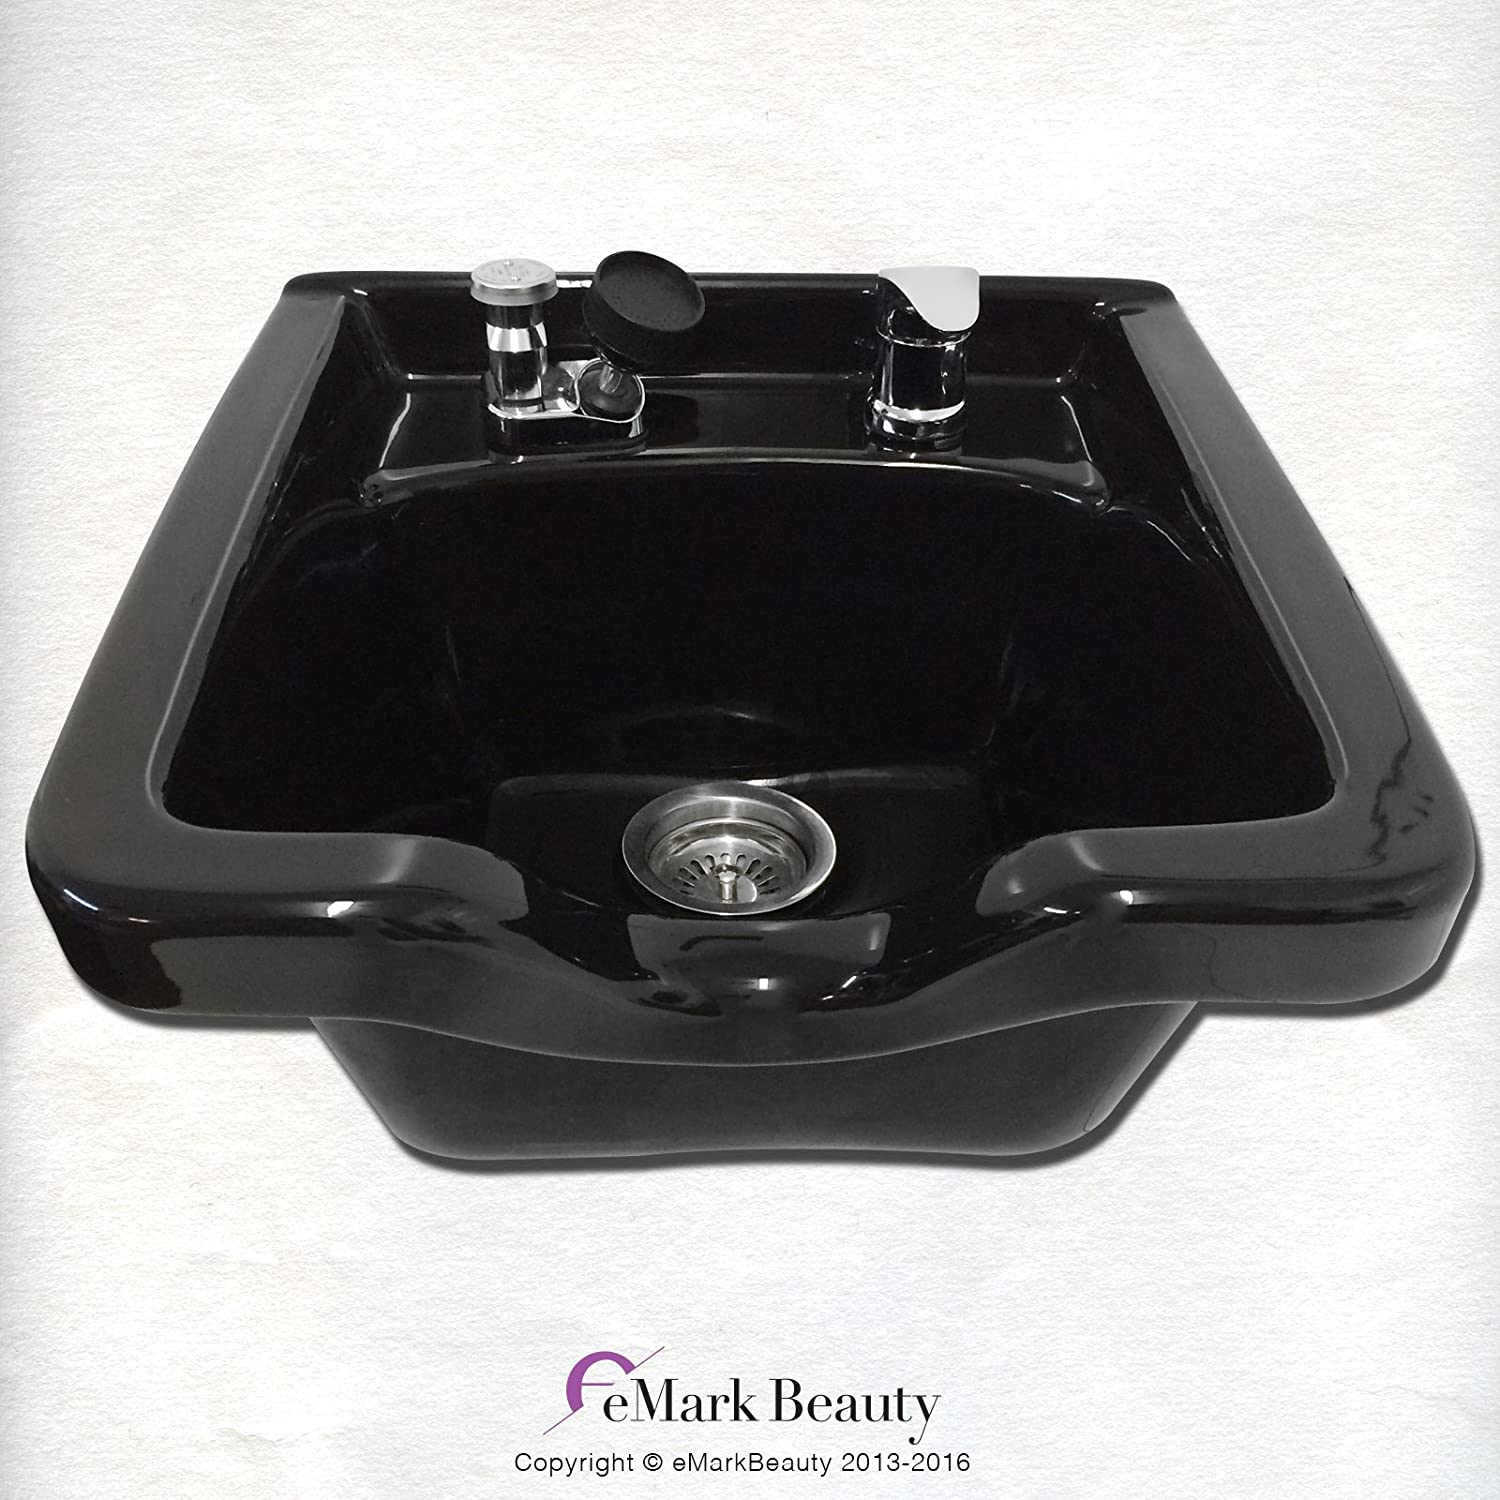 Amazon.com: Shampoo Bowl Black ABS Plastic Salon and Spa Hair Sink ...